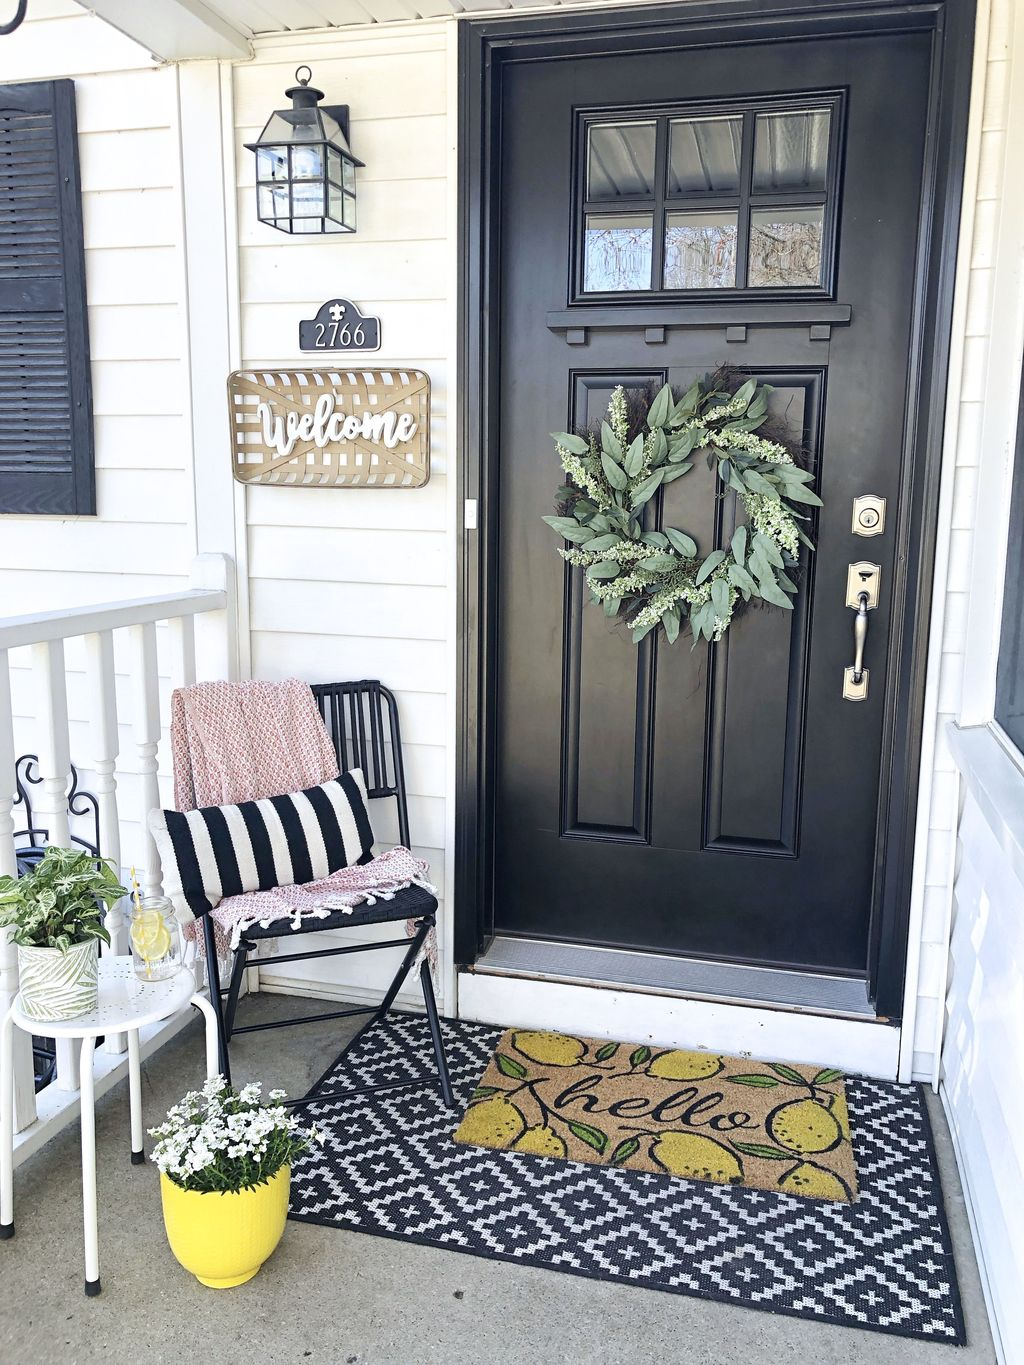 Inspiring Farmhouse Front Porch Decor Ideas 16